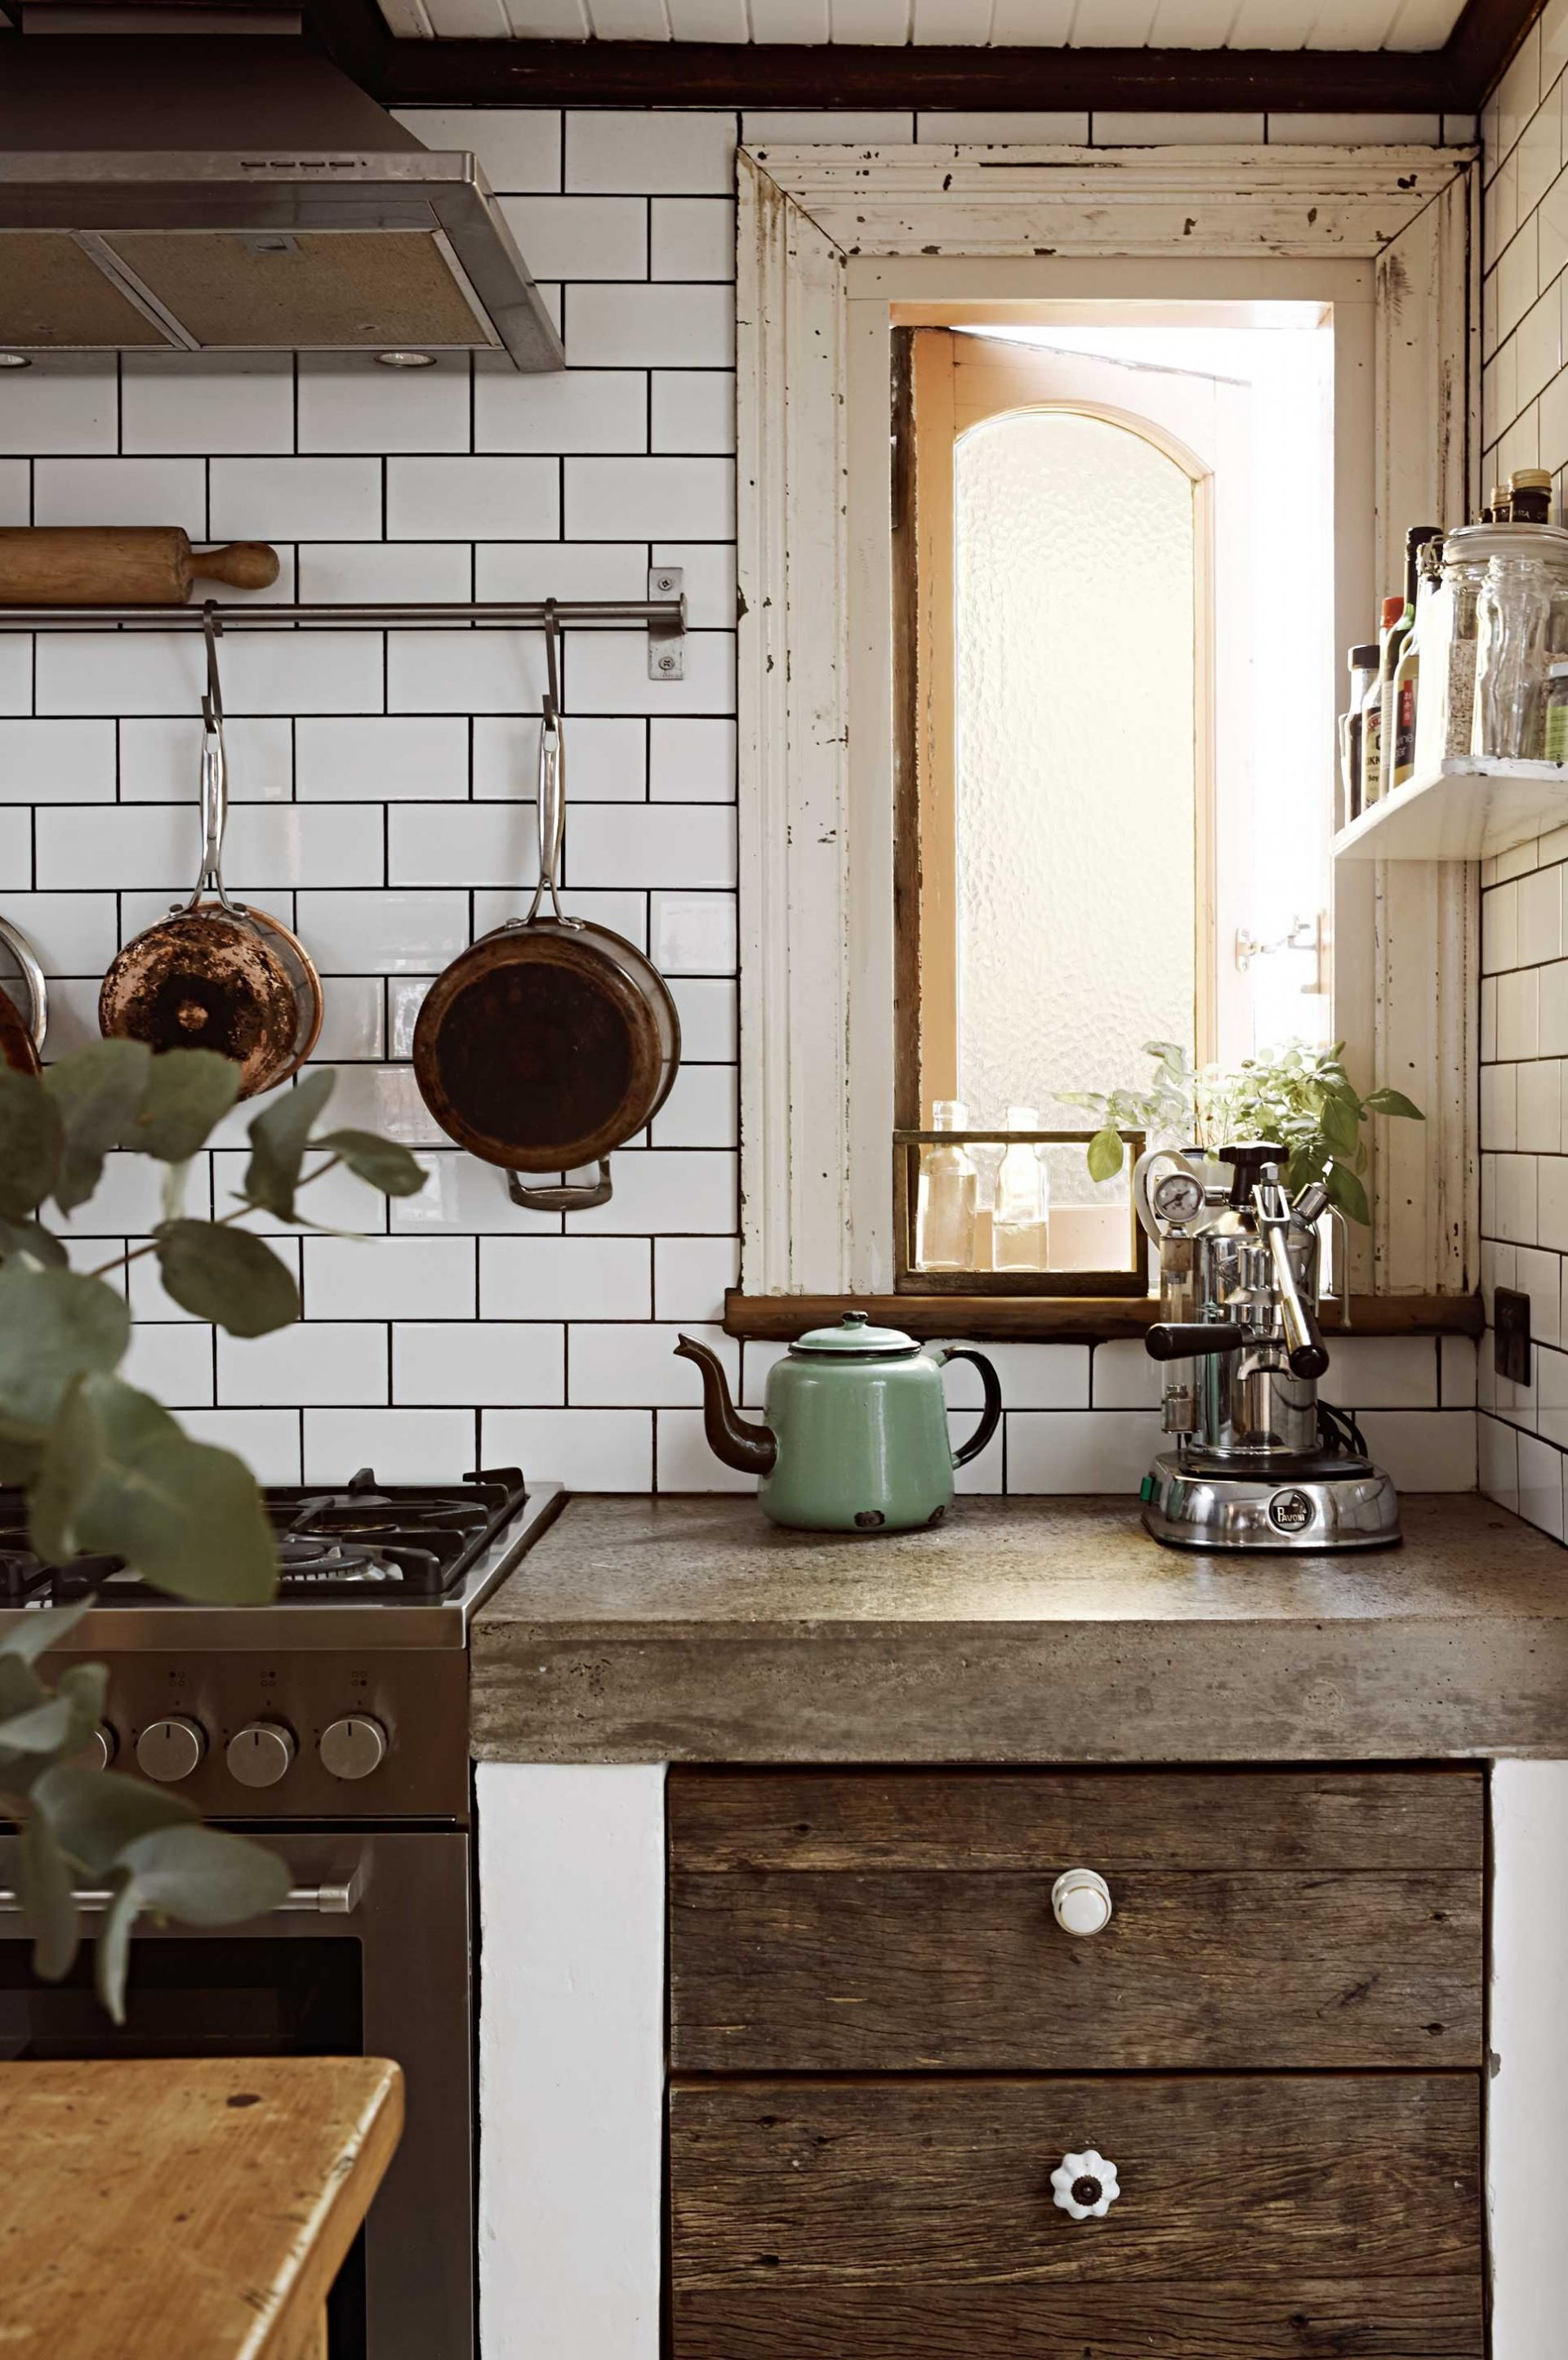 Fiona Muebles De Cocina Rustic Kitchen Ideas From Insideout Au Styling By Nicole